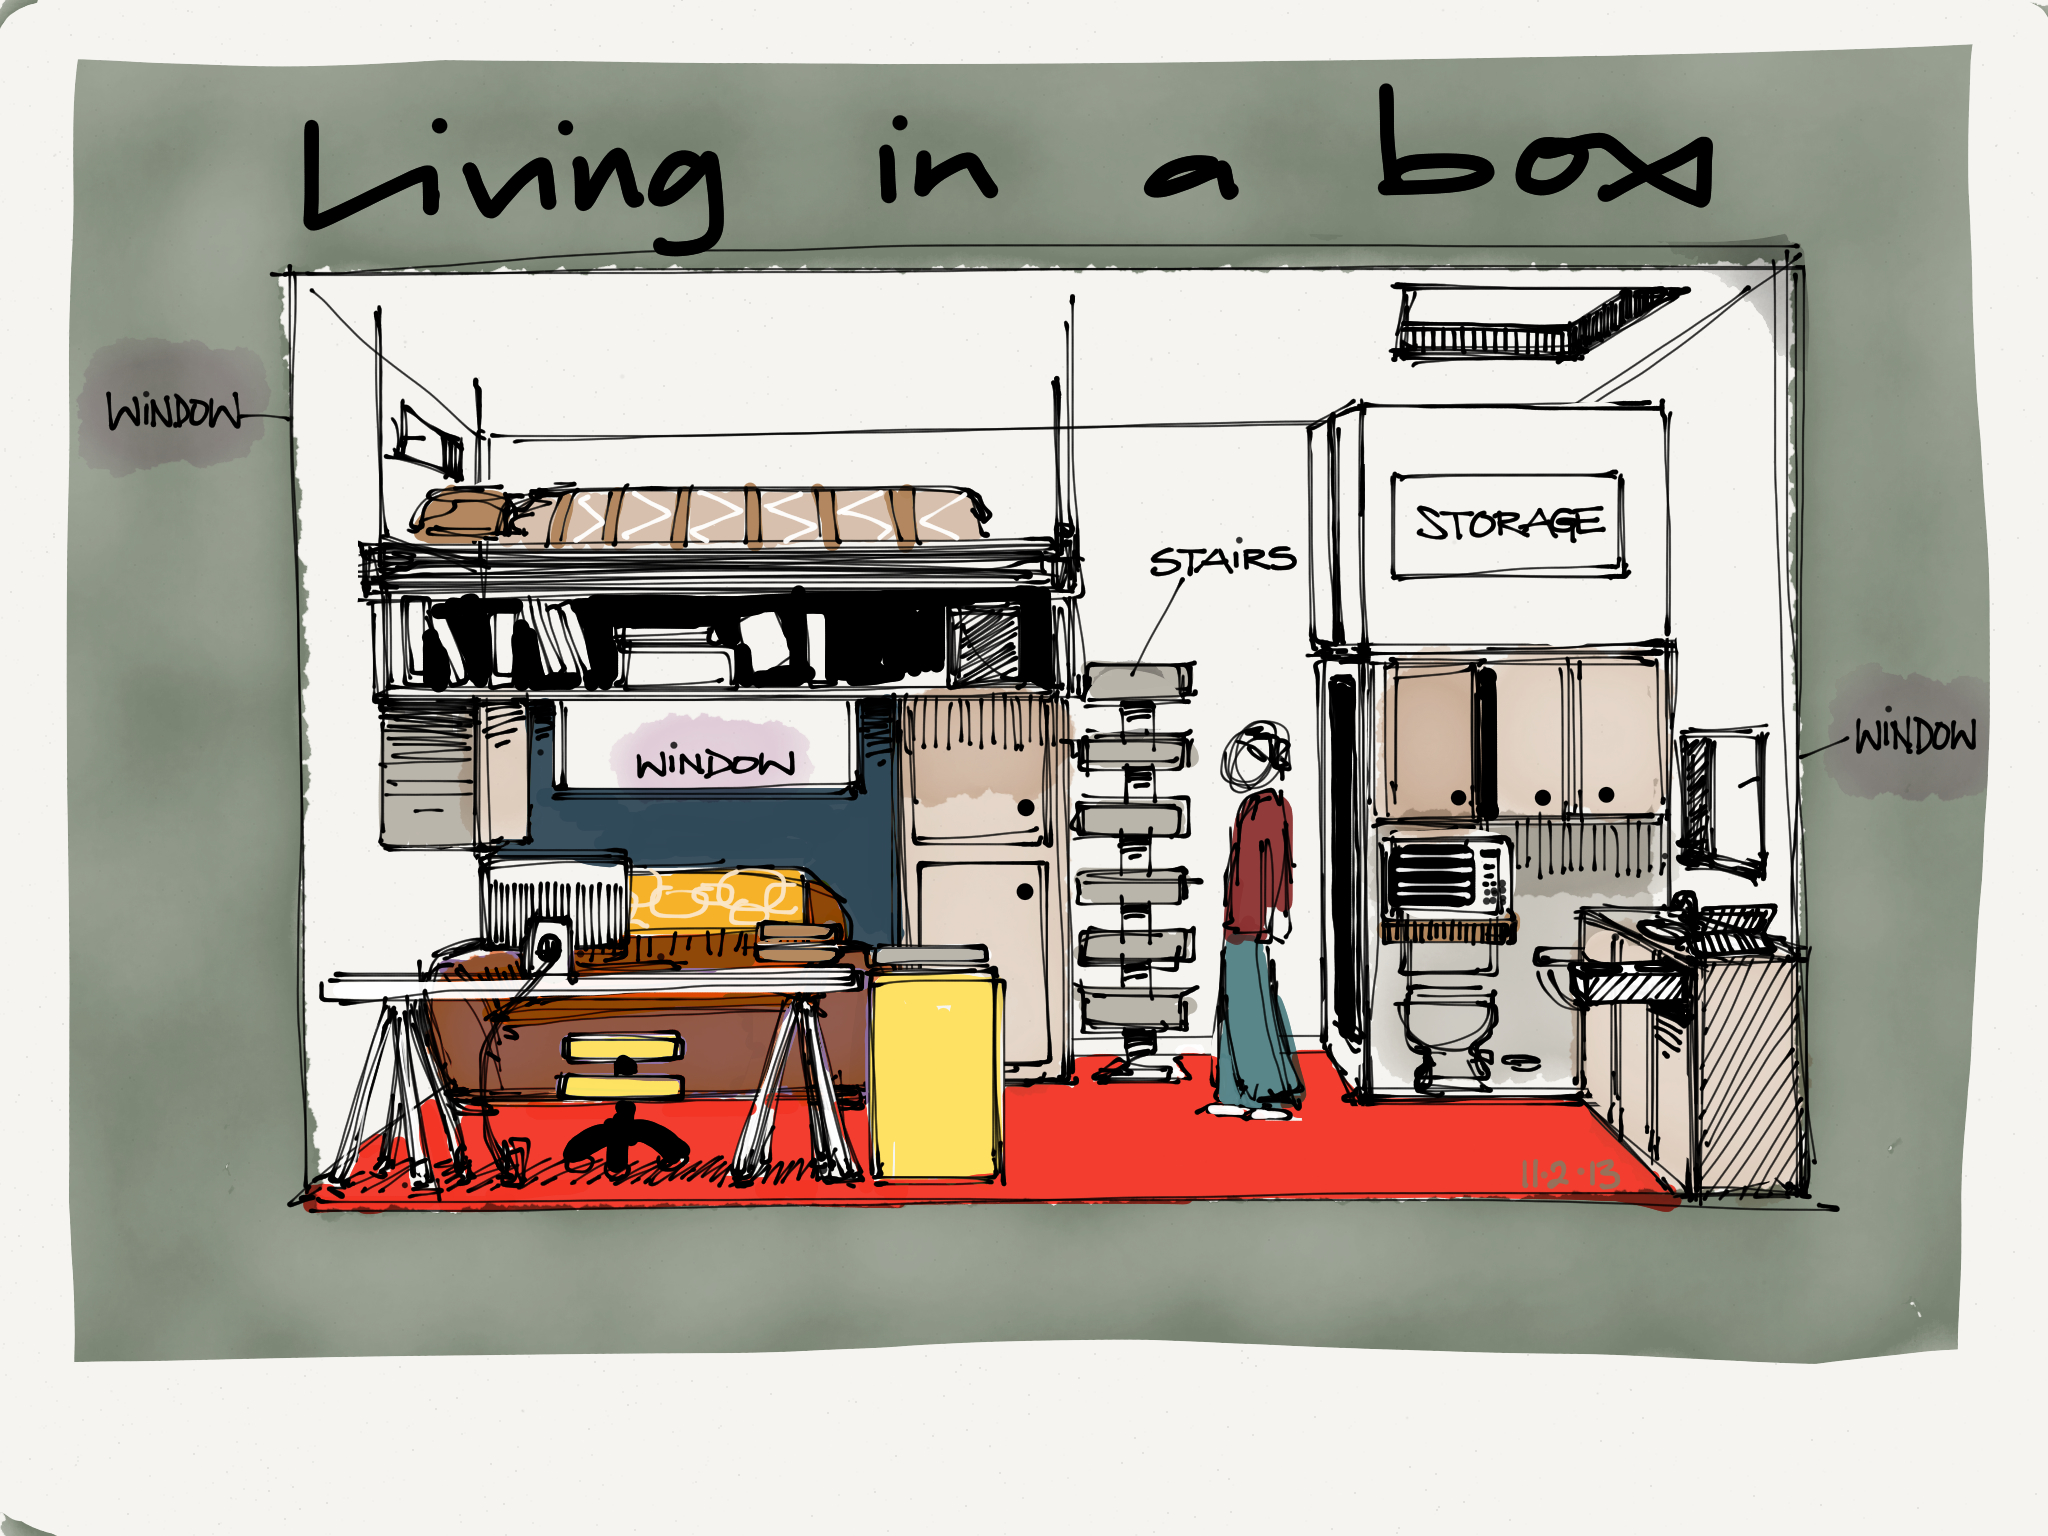 wagonized: Living in a box